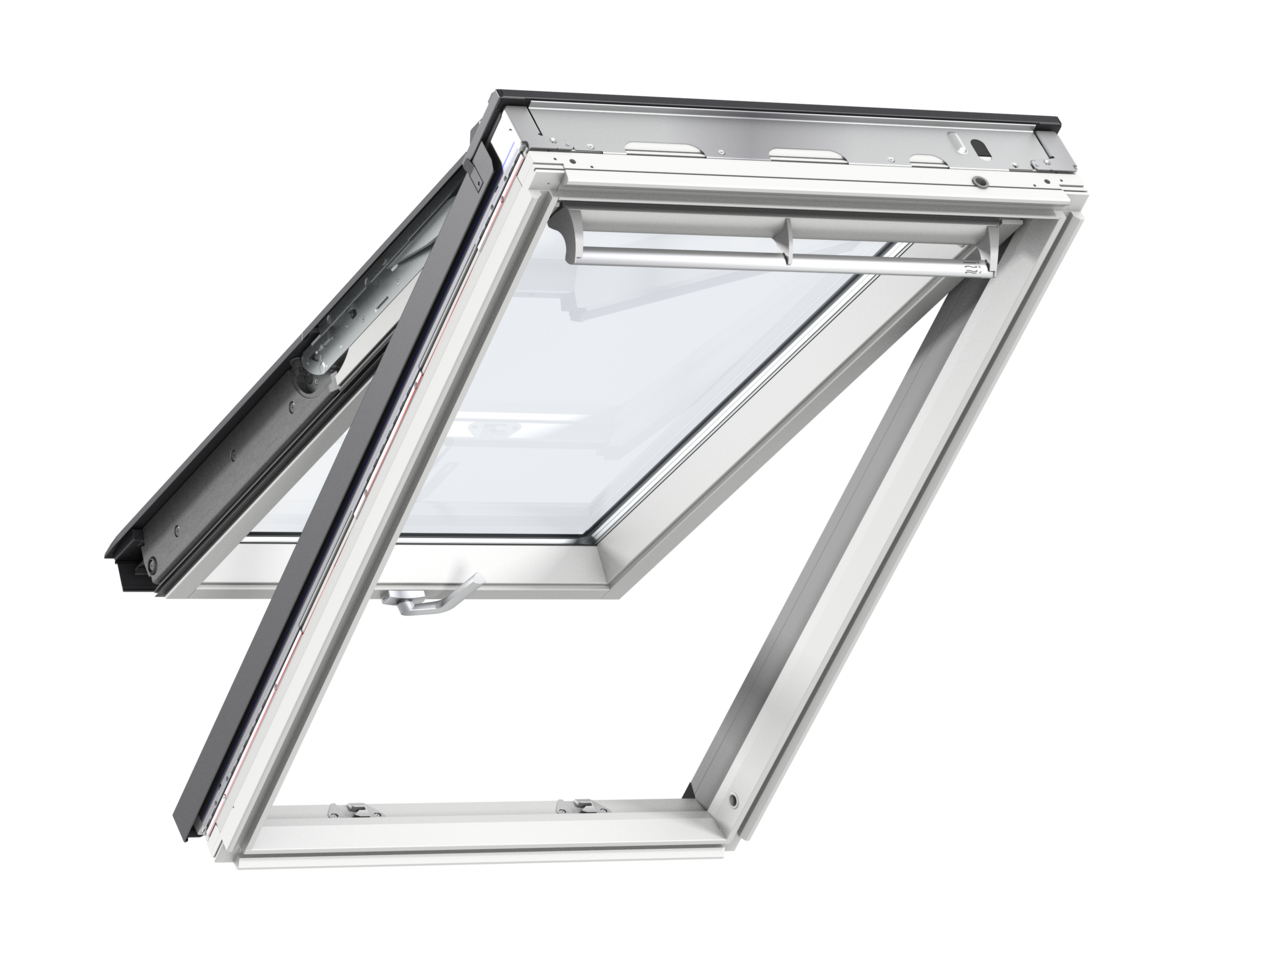 Velux GPL SK06 1140 x 1180mm Top Hung Standard 70Pane Roof Window - White Painted